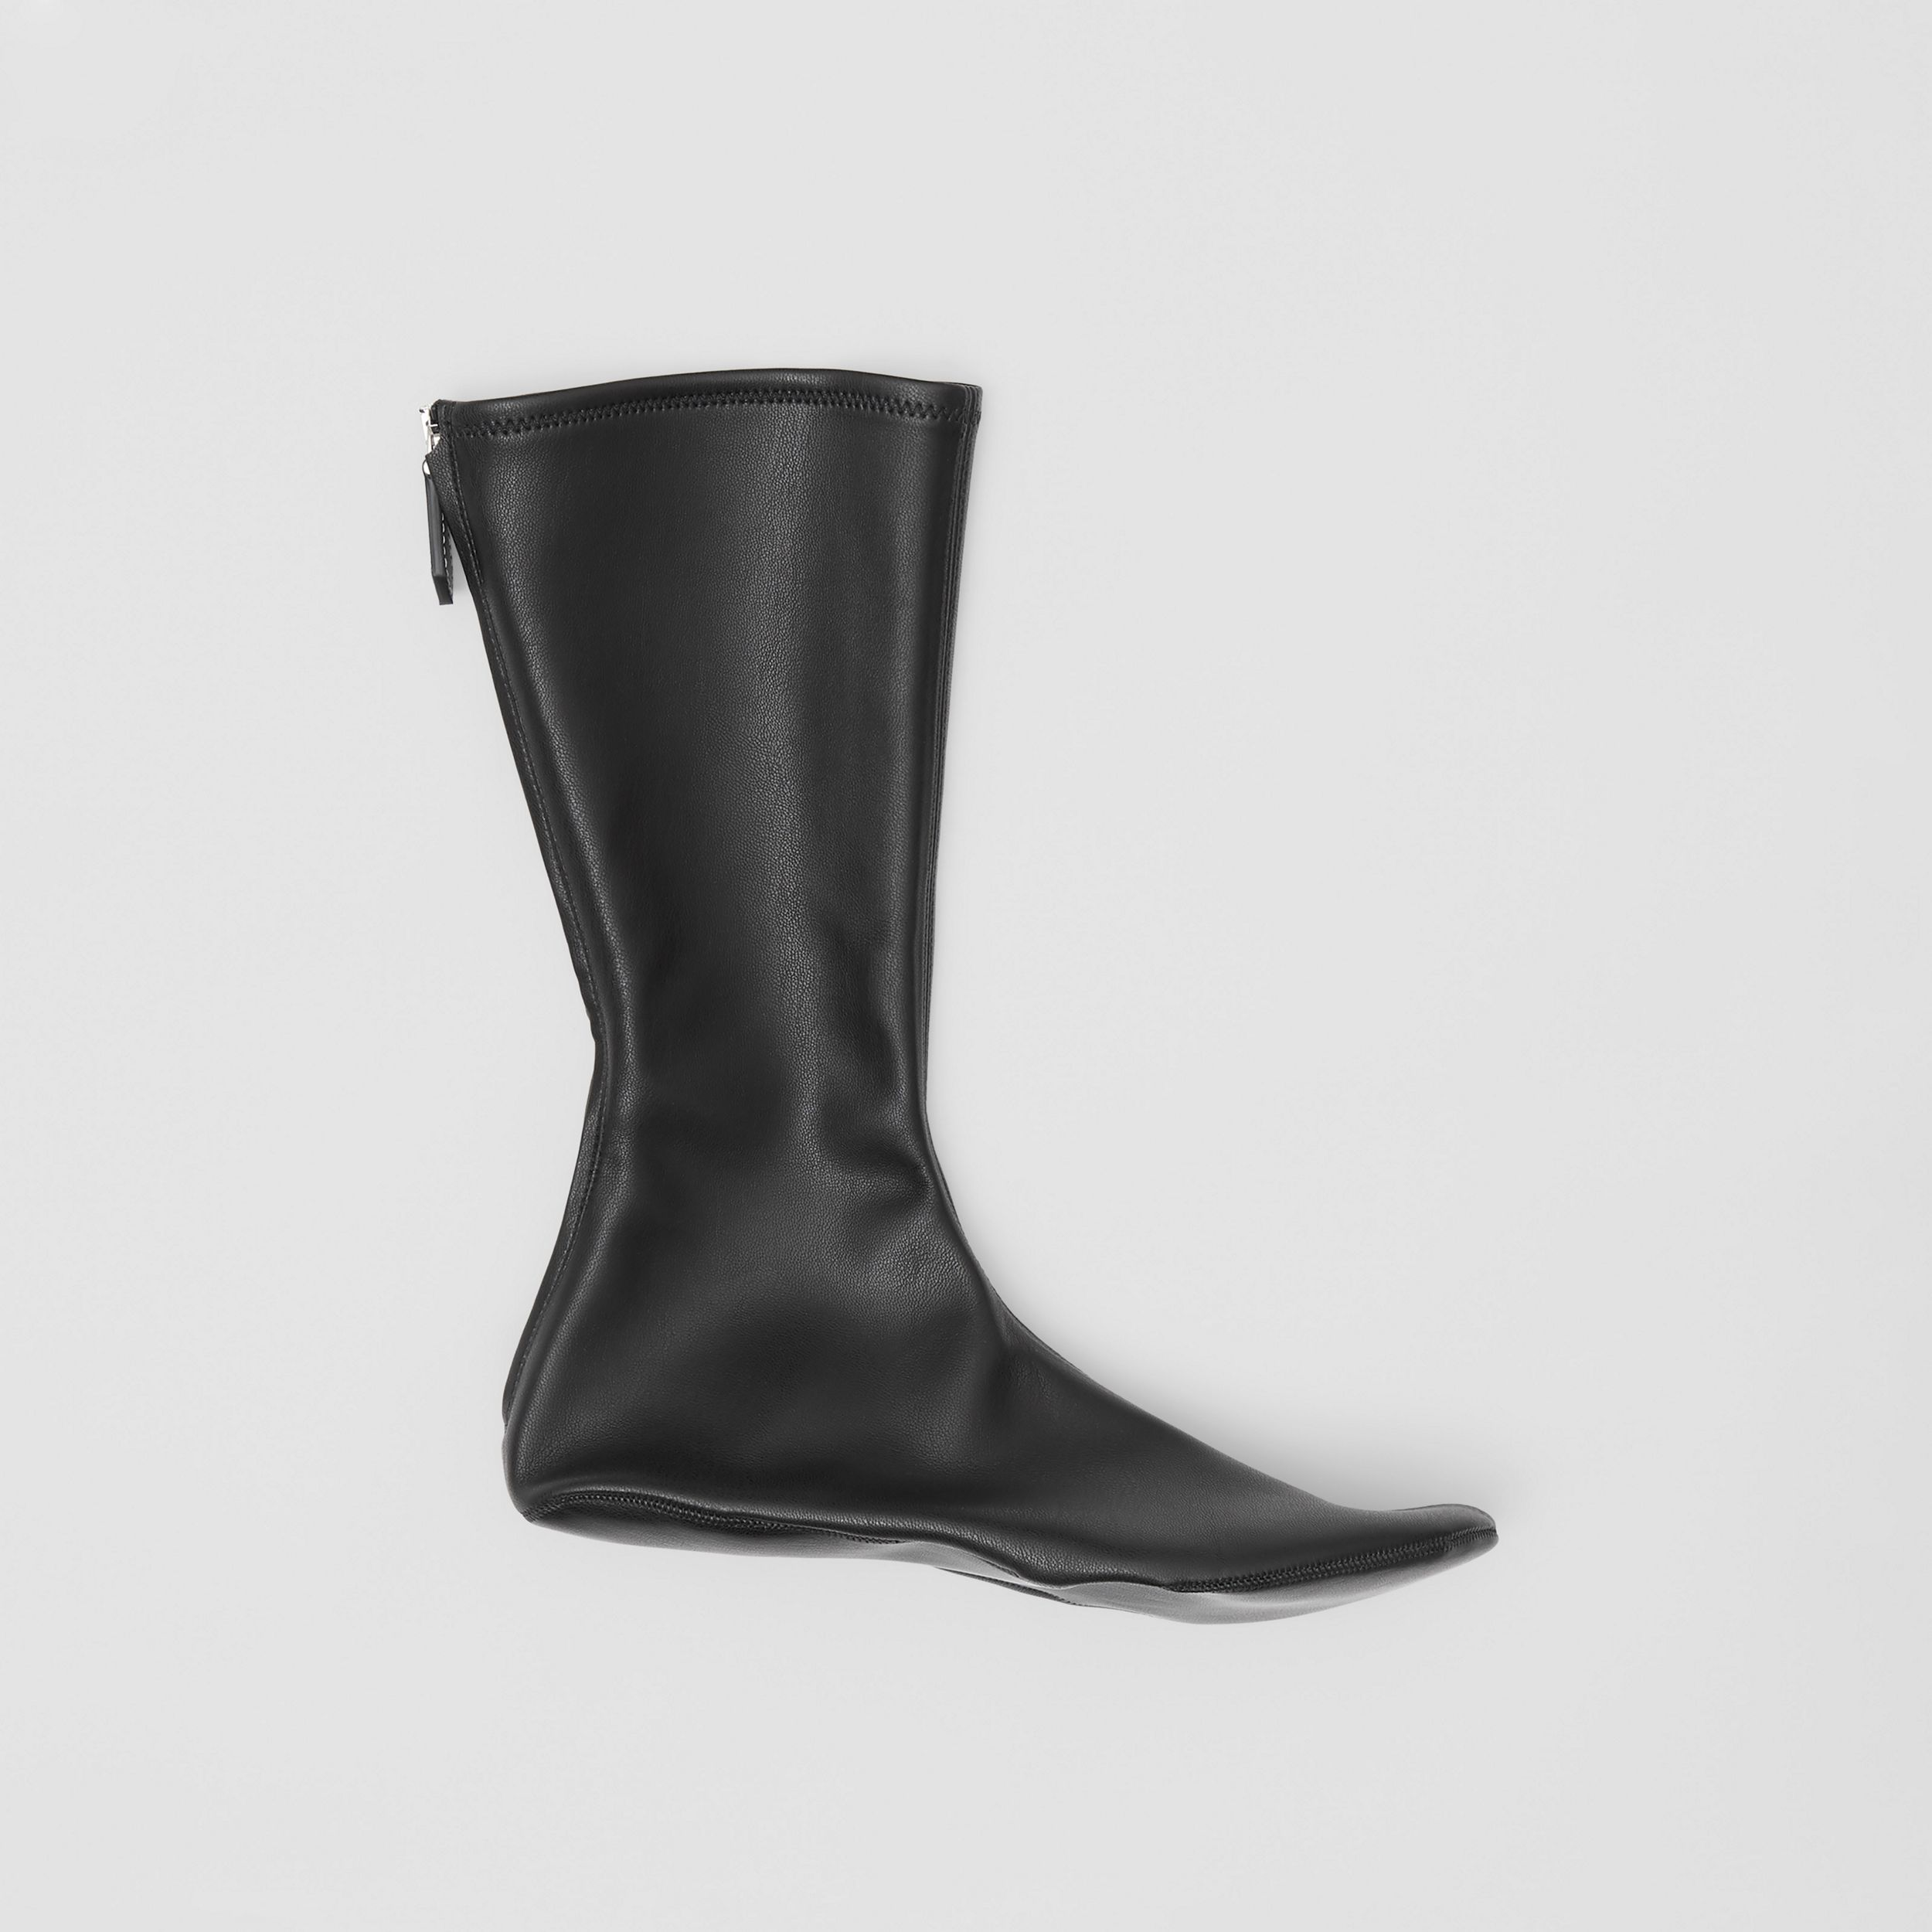 Faux Leather Mid-calf Socks in Black - Women | Burberry United Kingdom - 1